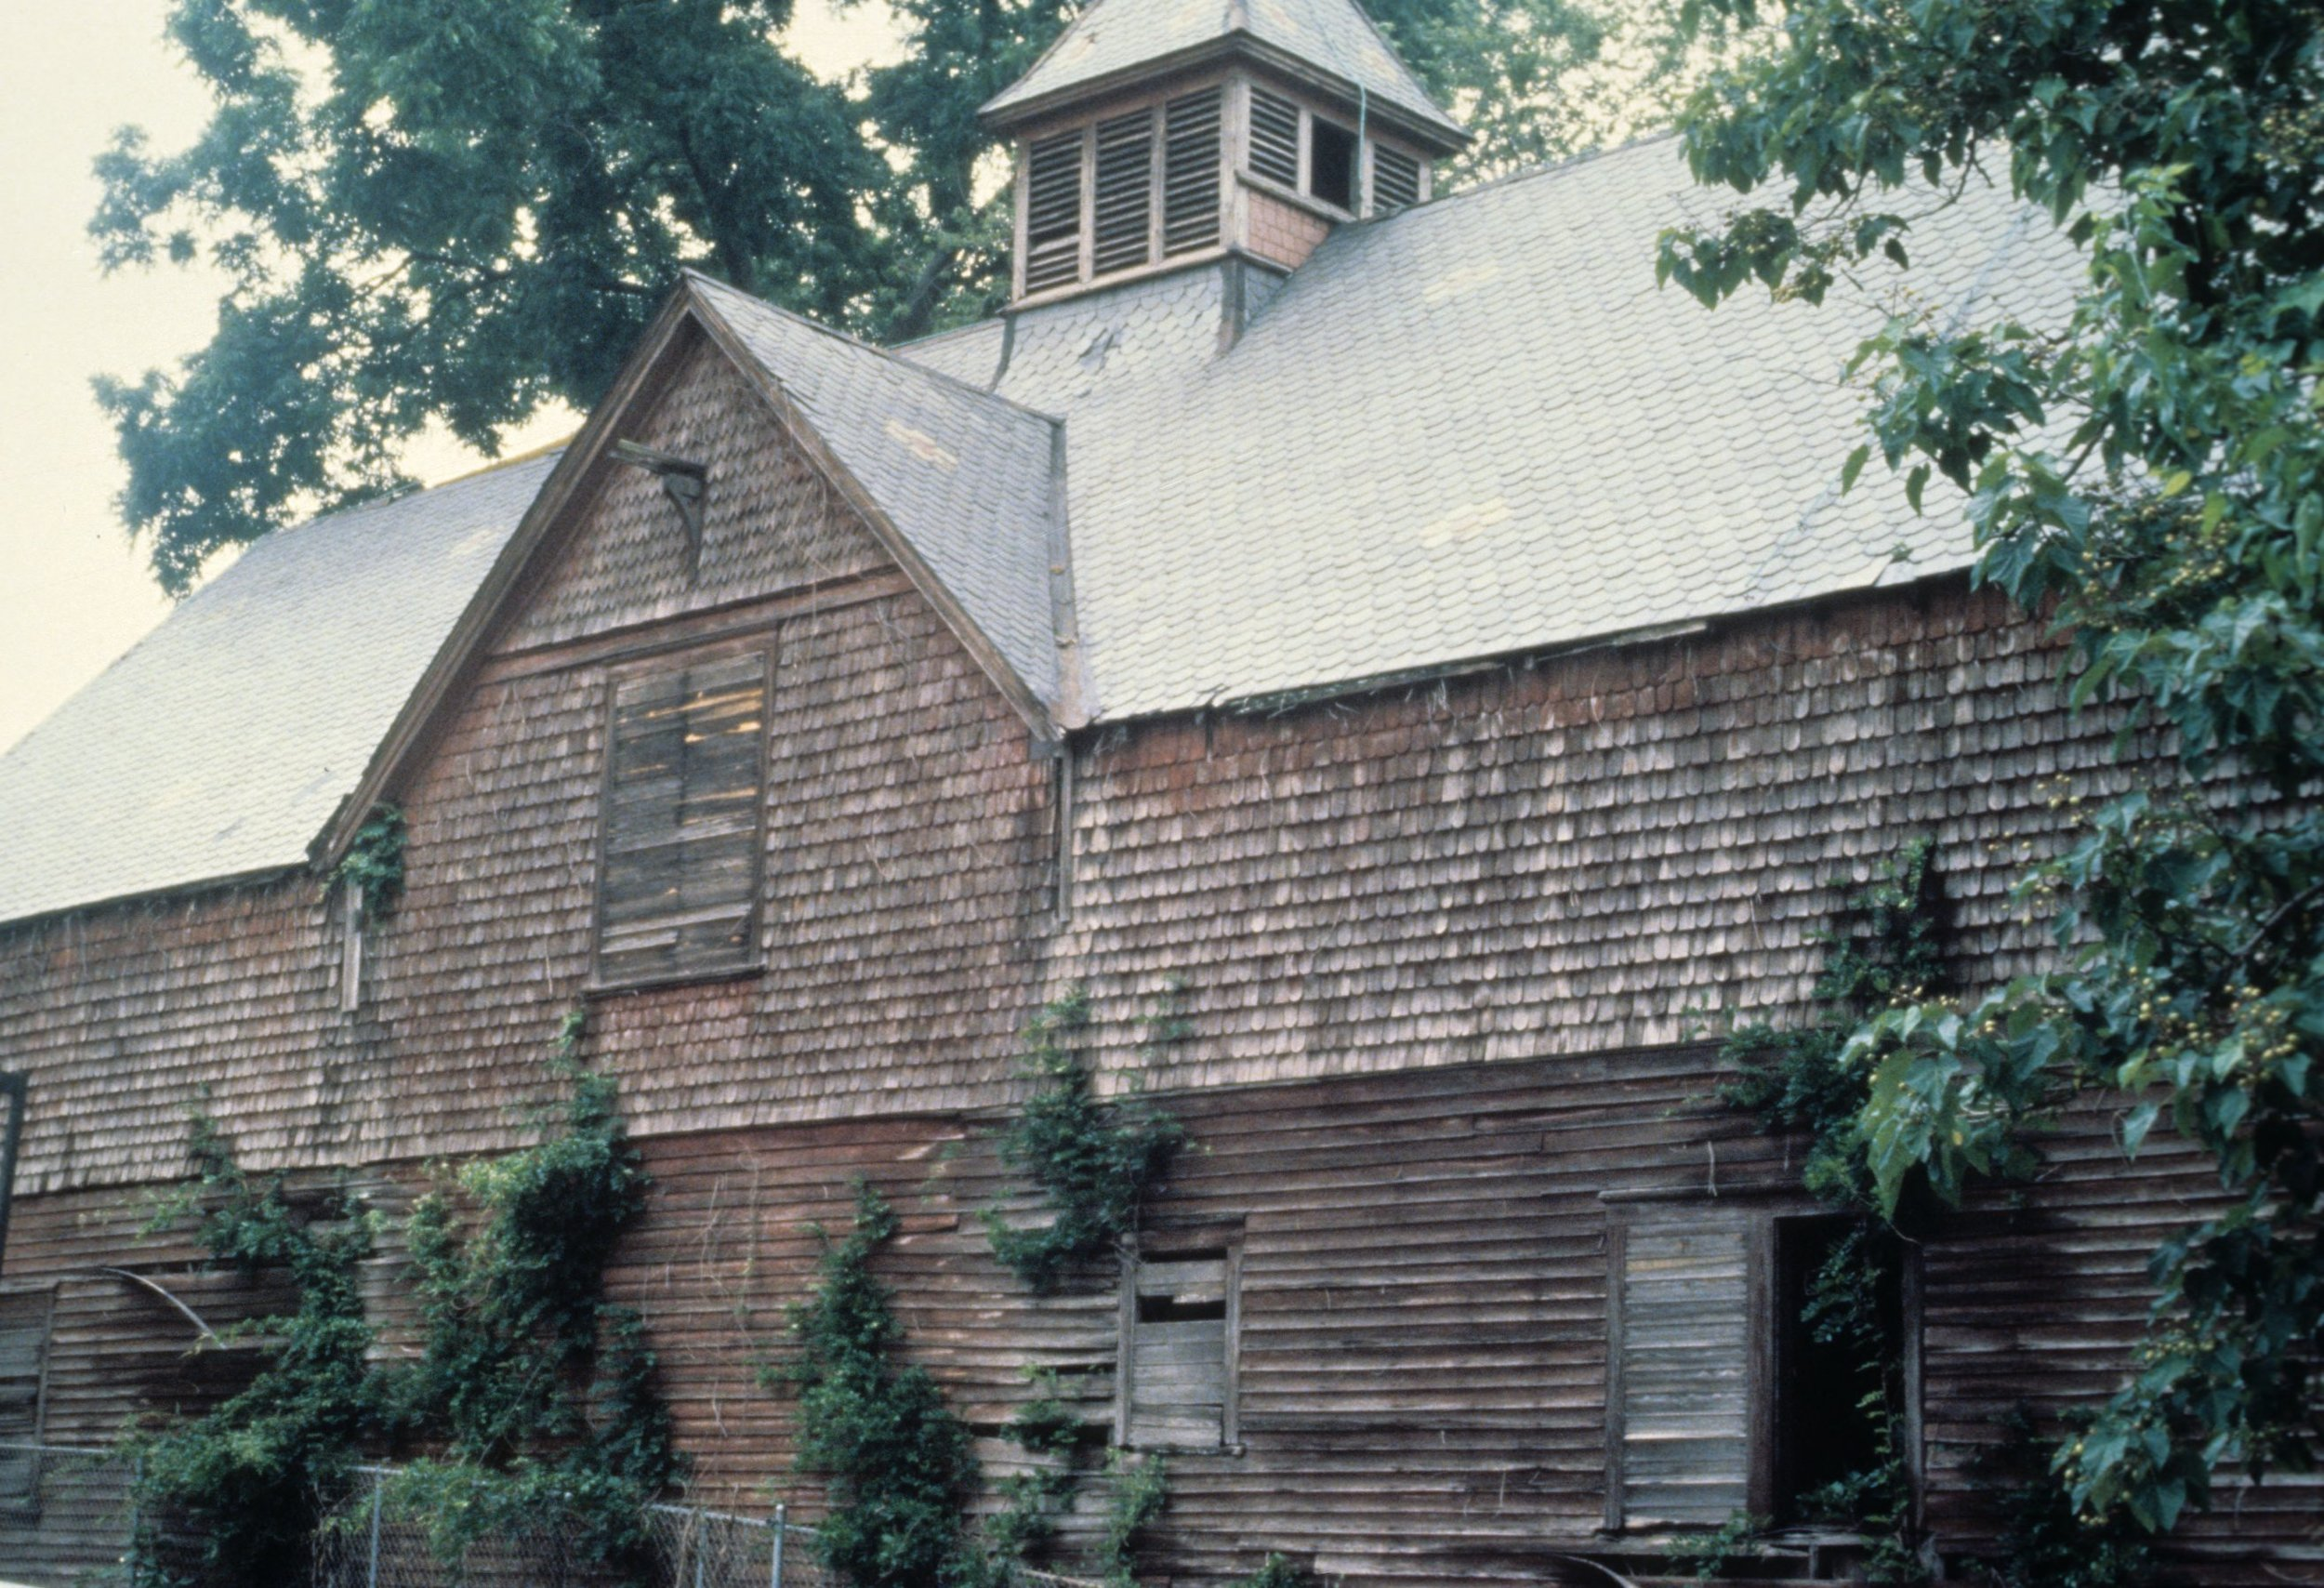 Old Photo of the Historic Tucker Carriage House before renovations.